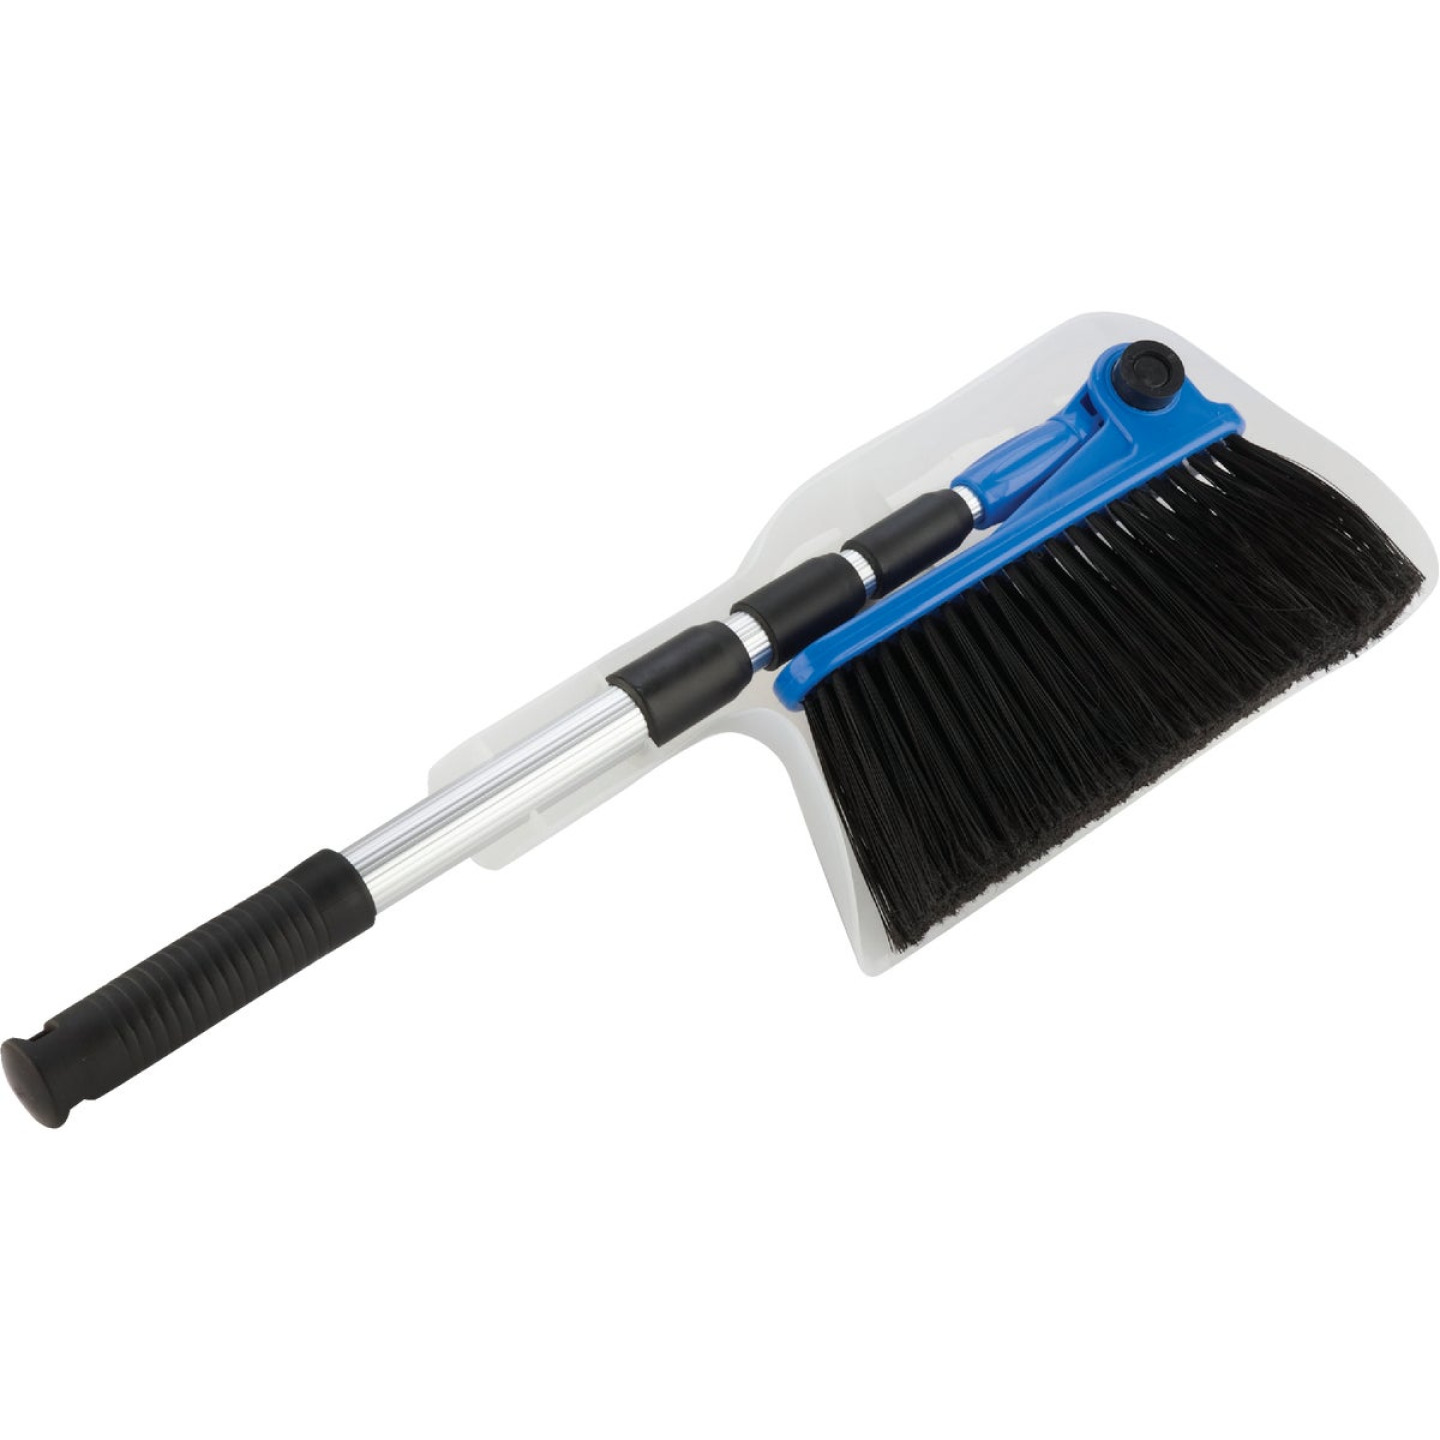 Camco Adjustable Length RV Broom and Dustpan Image 1